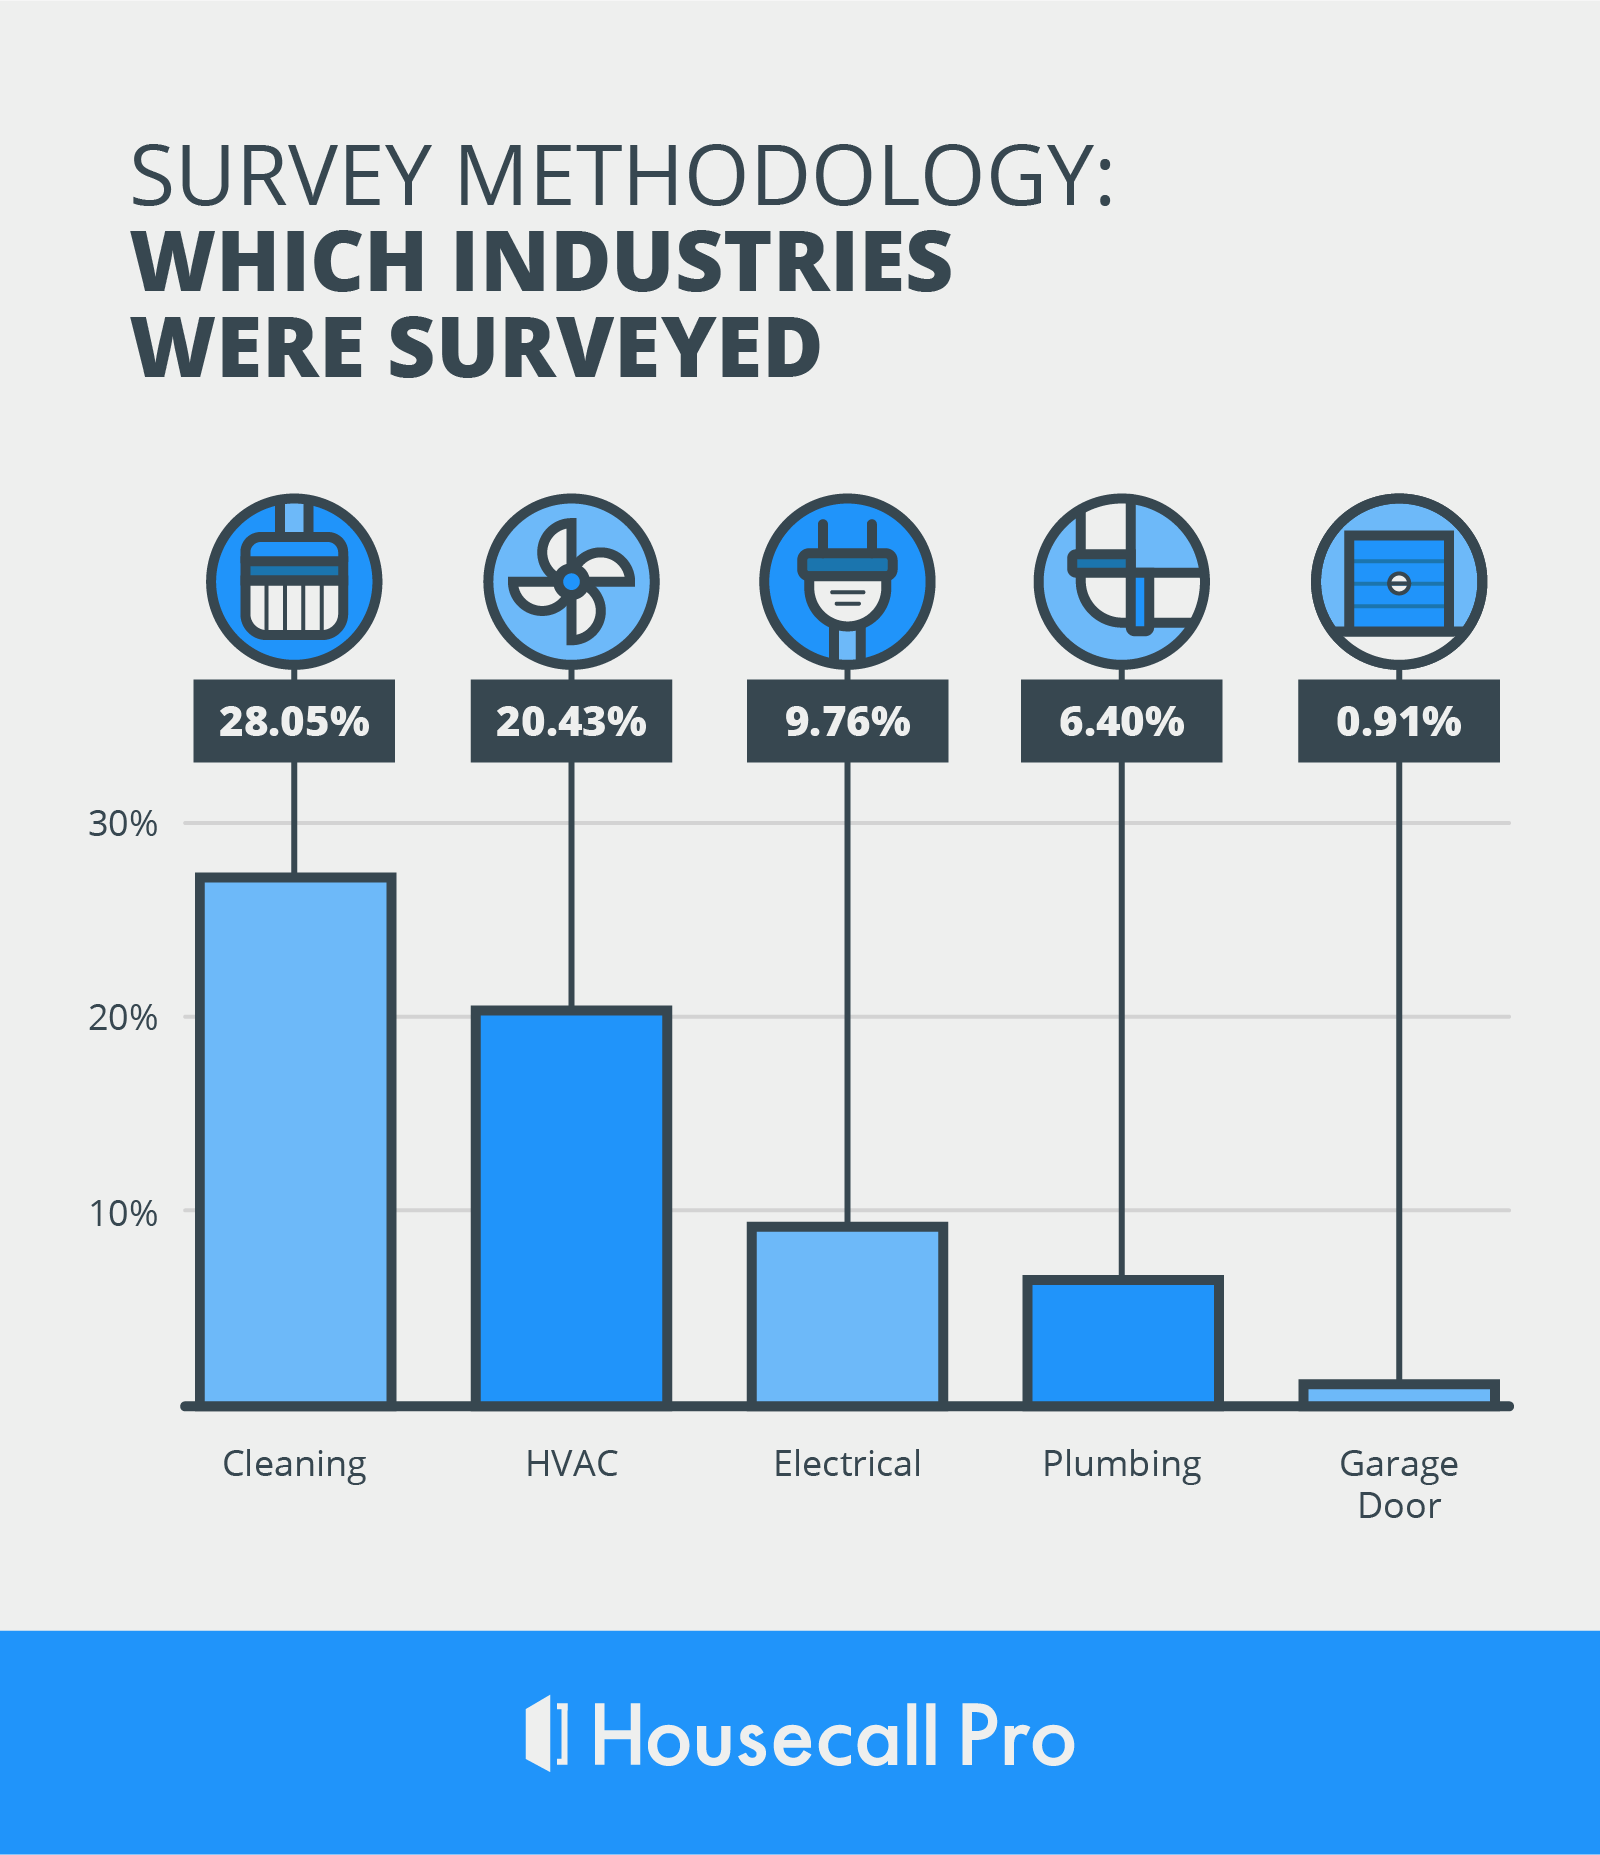 surveyed industries methodology